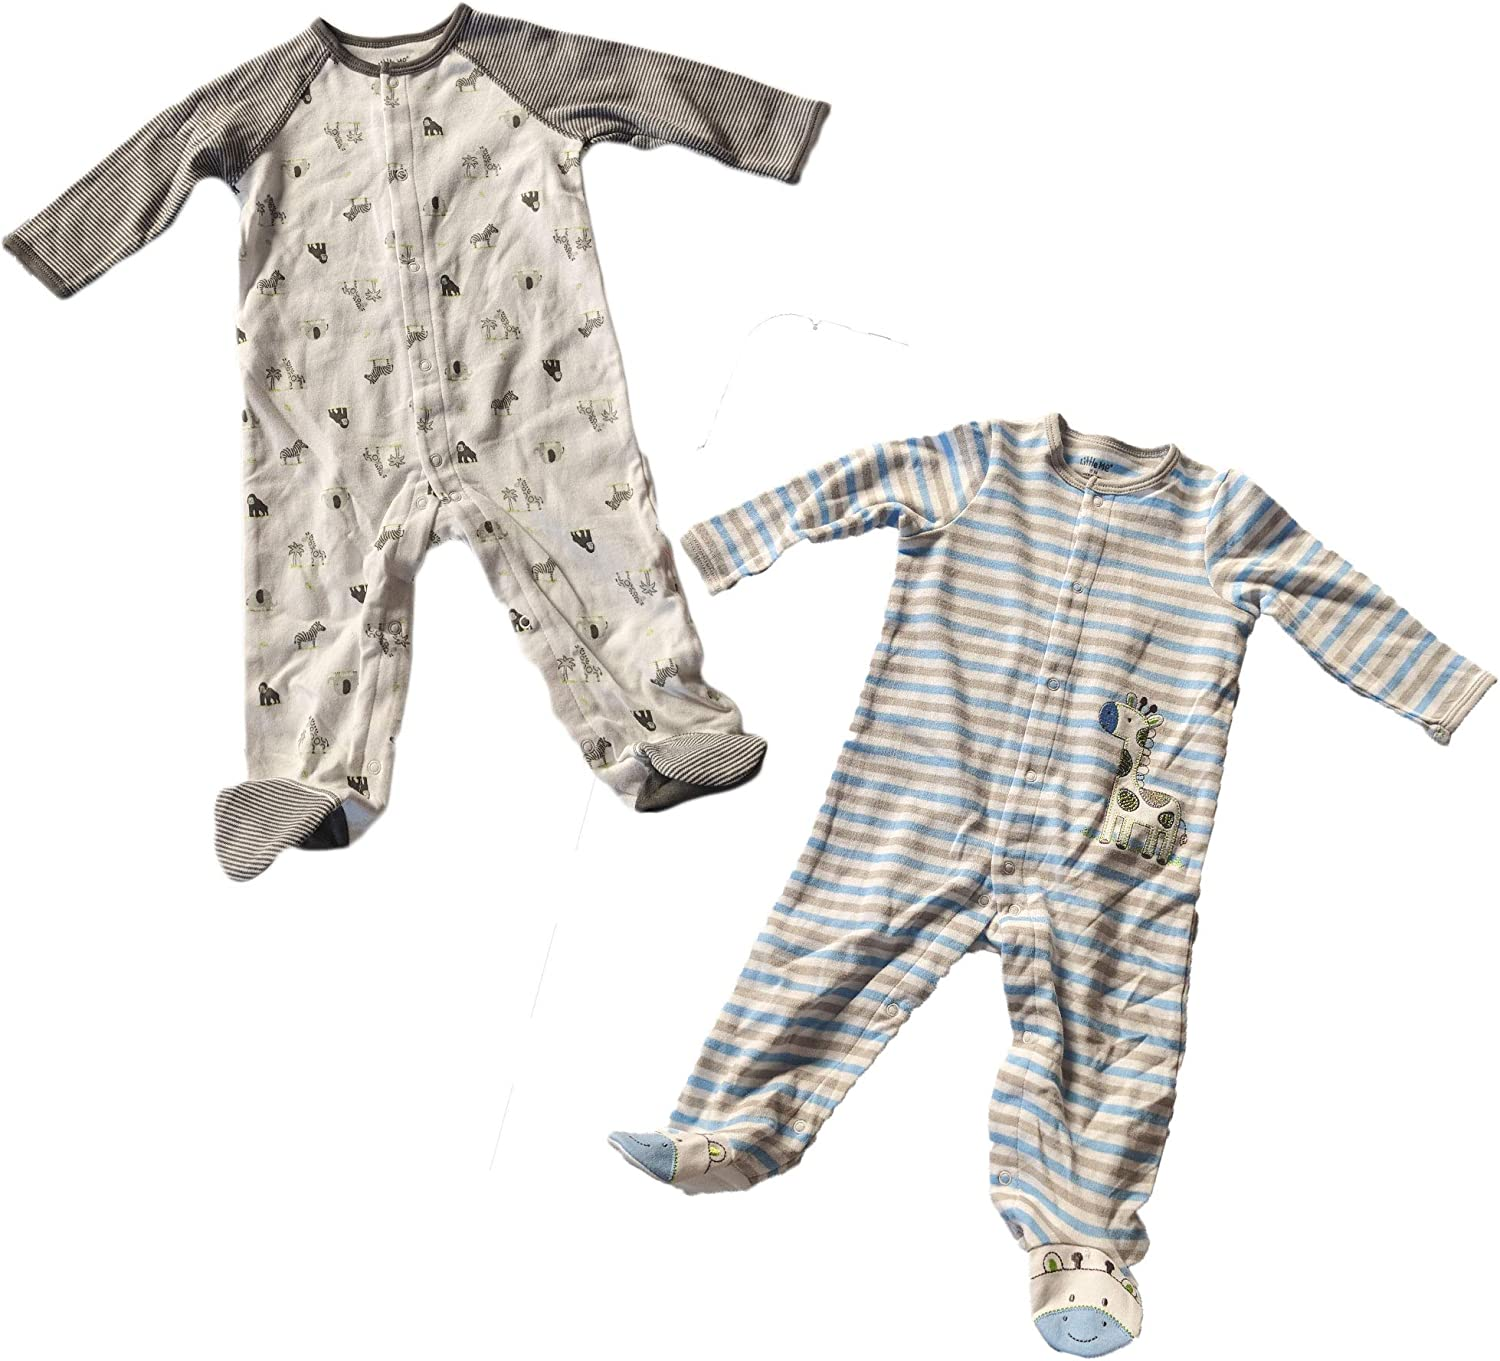 Little Me Baby 2 Pack Footies 3 Month Giraffe